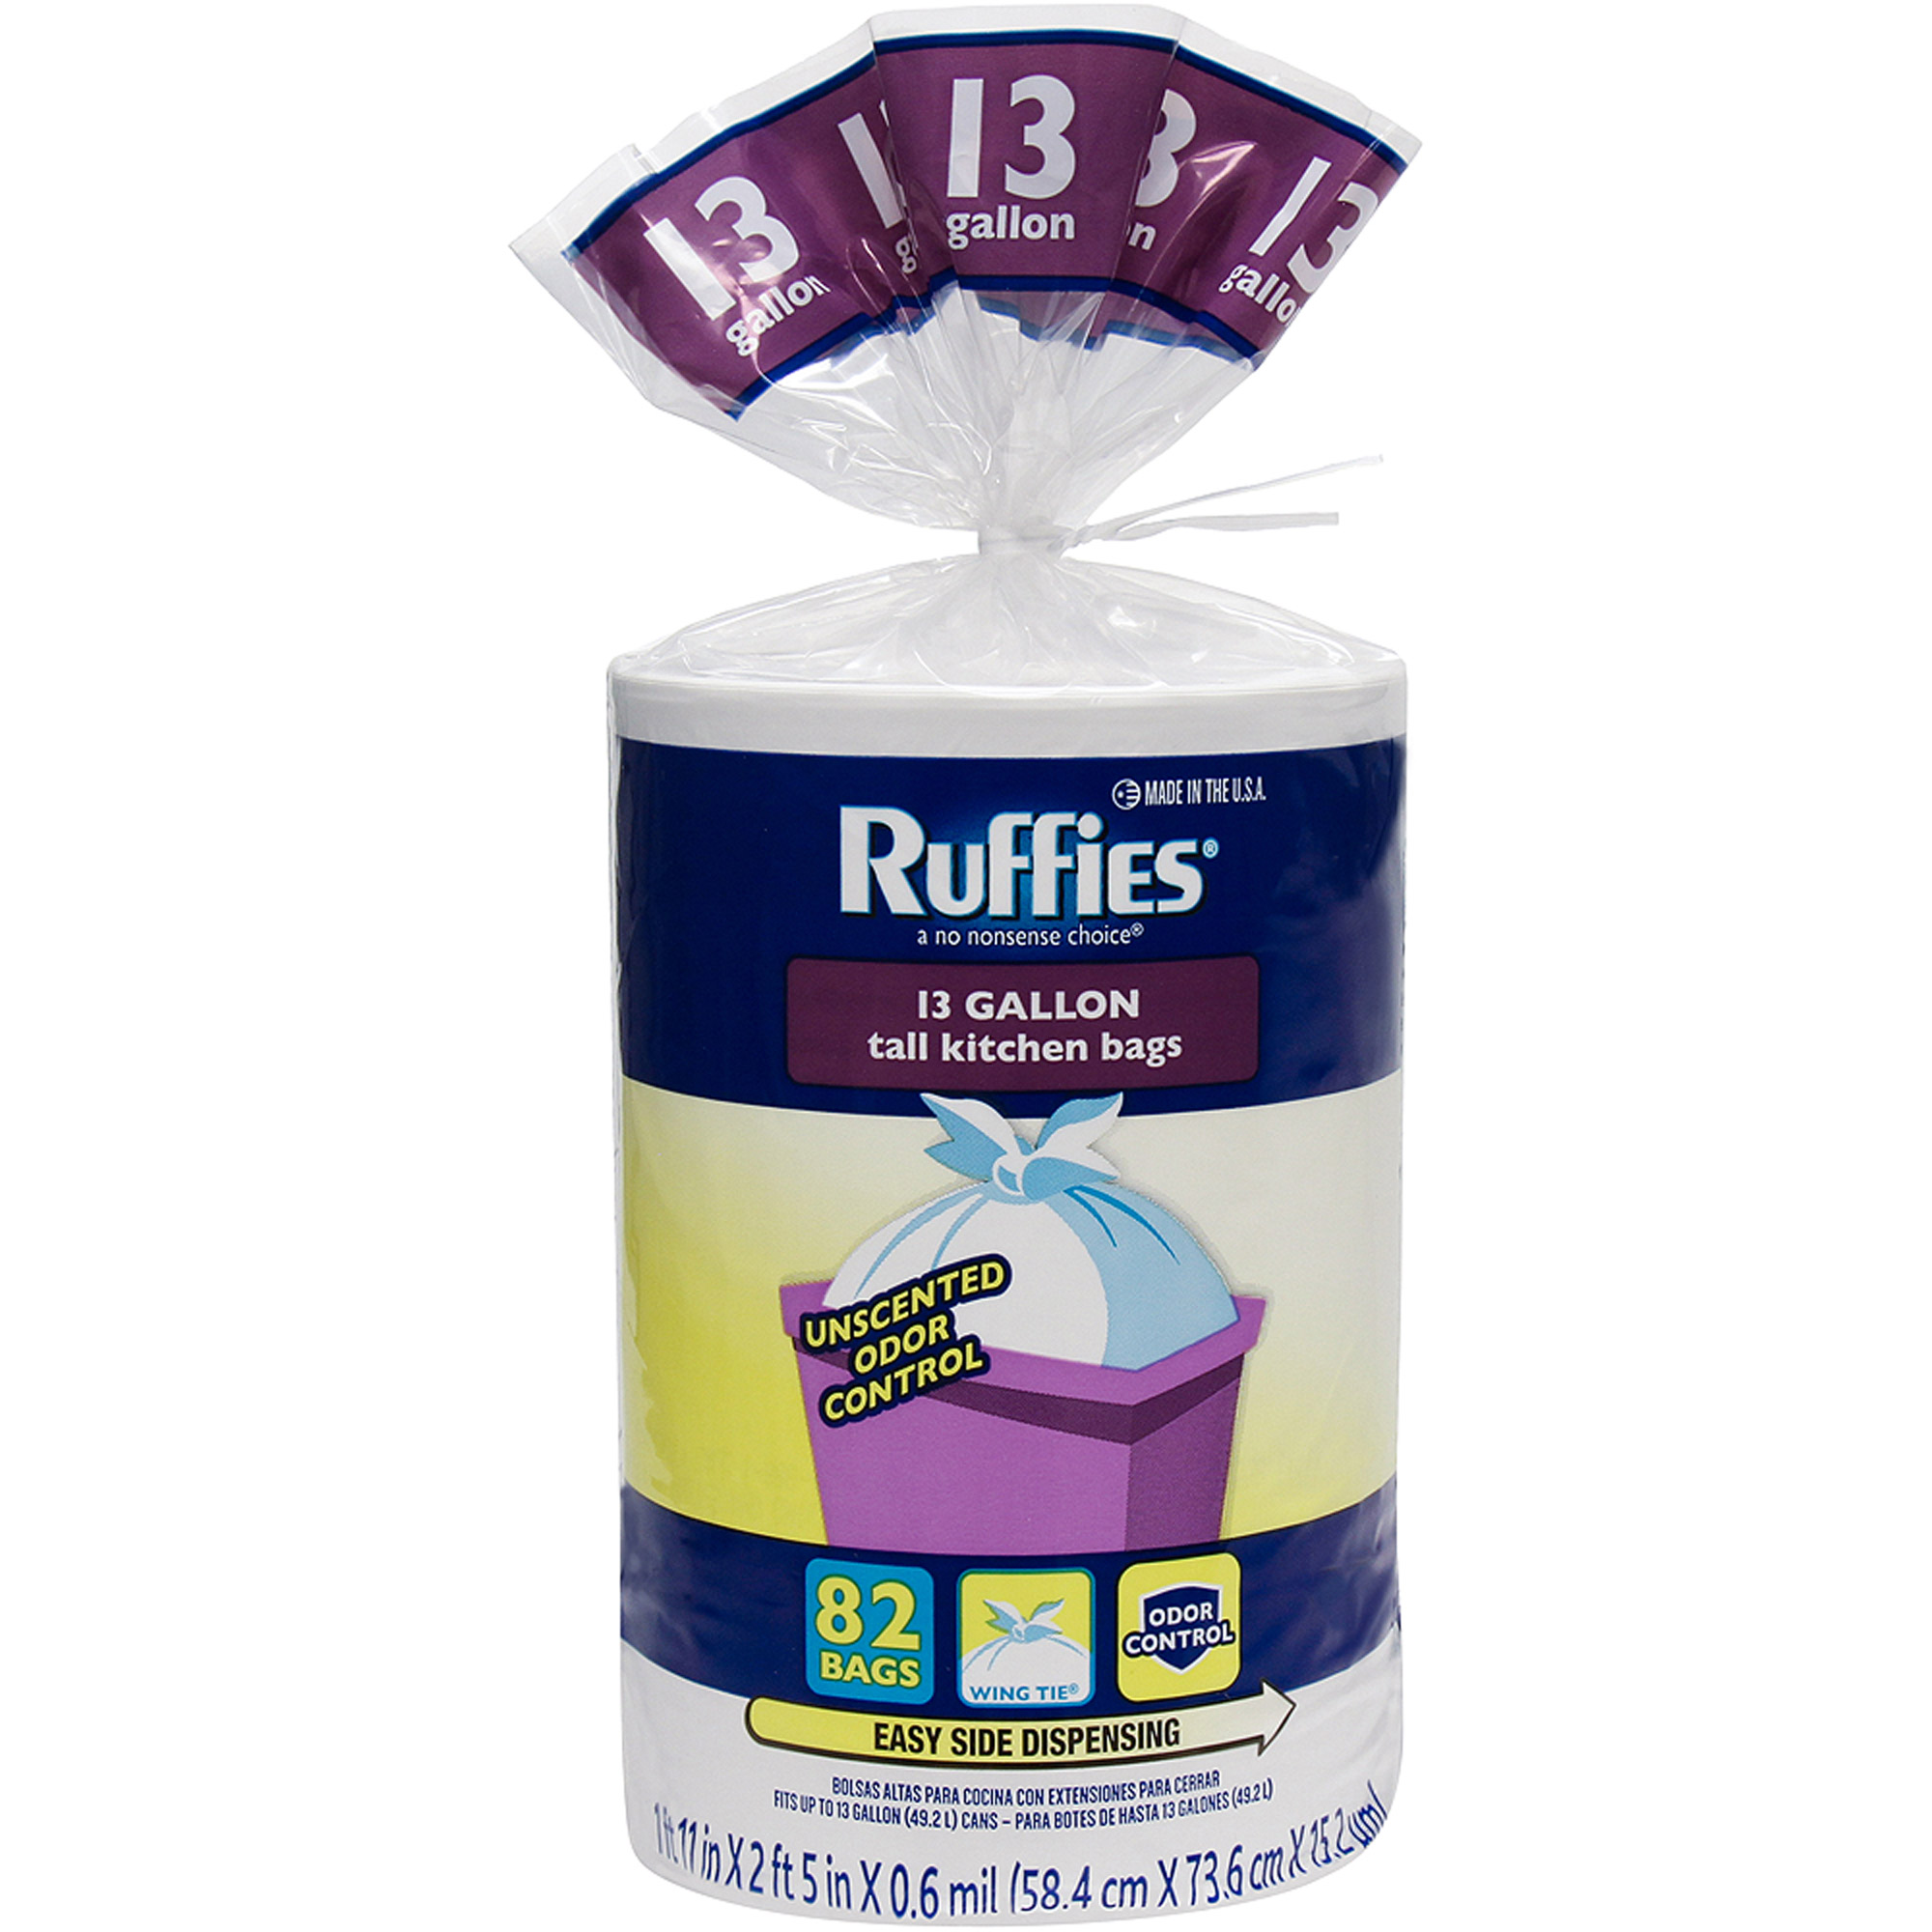 Ruffies Tall Kitchen Trash Bags, 13 gal, 82 count